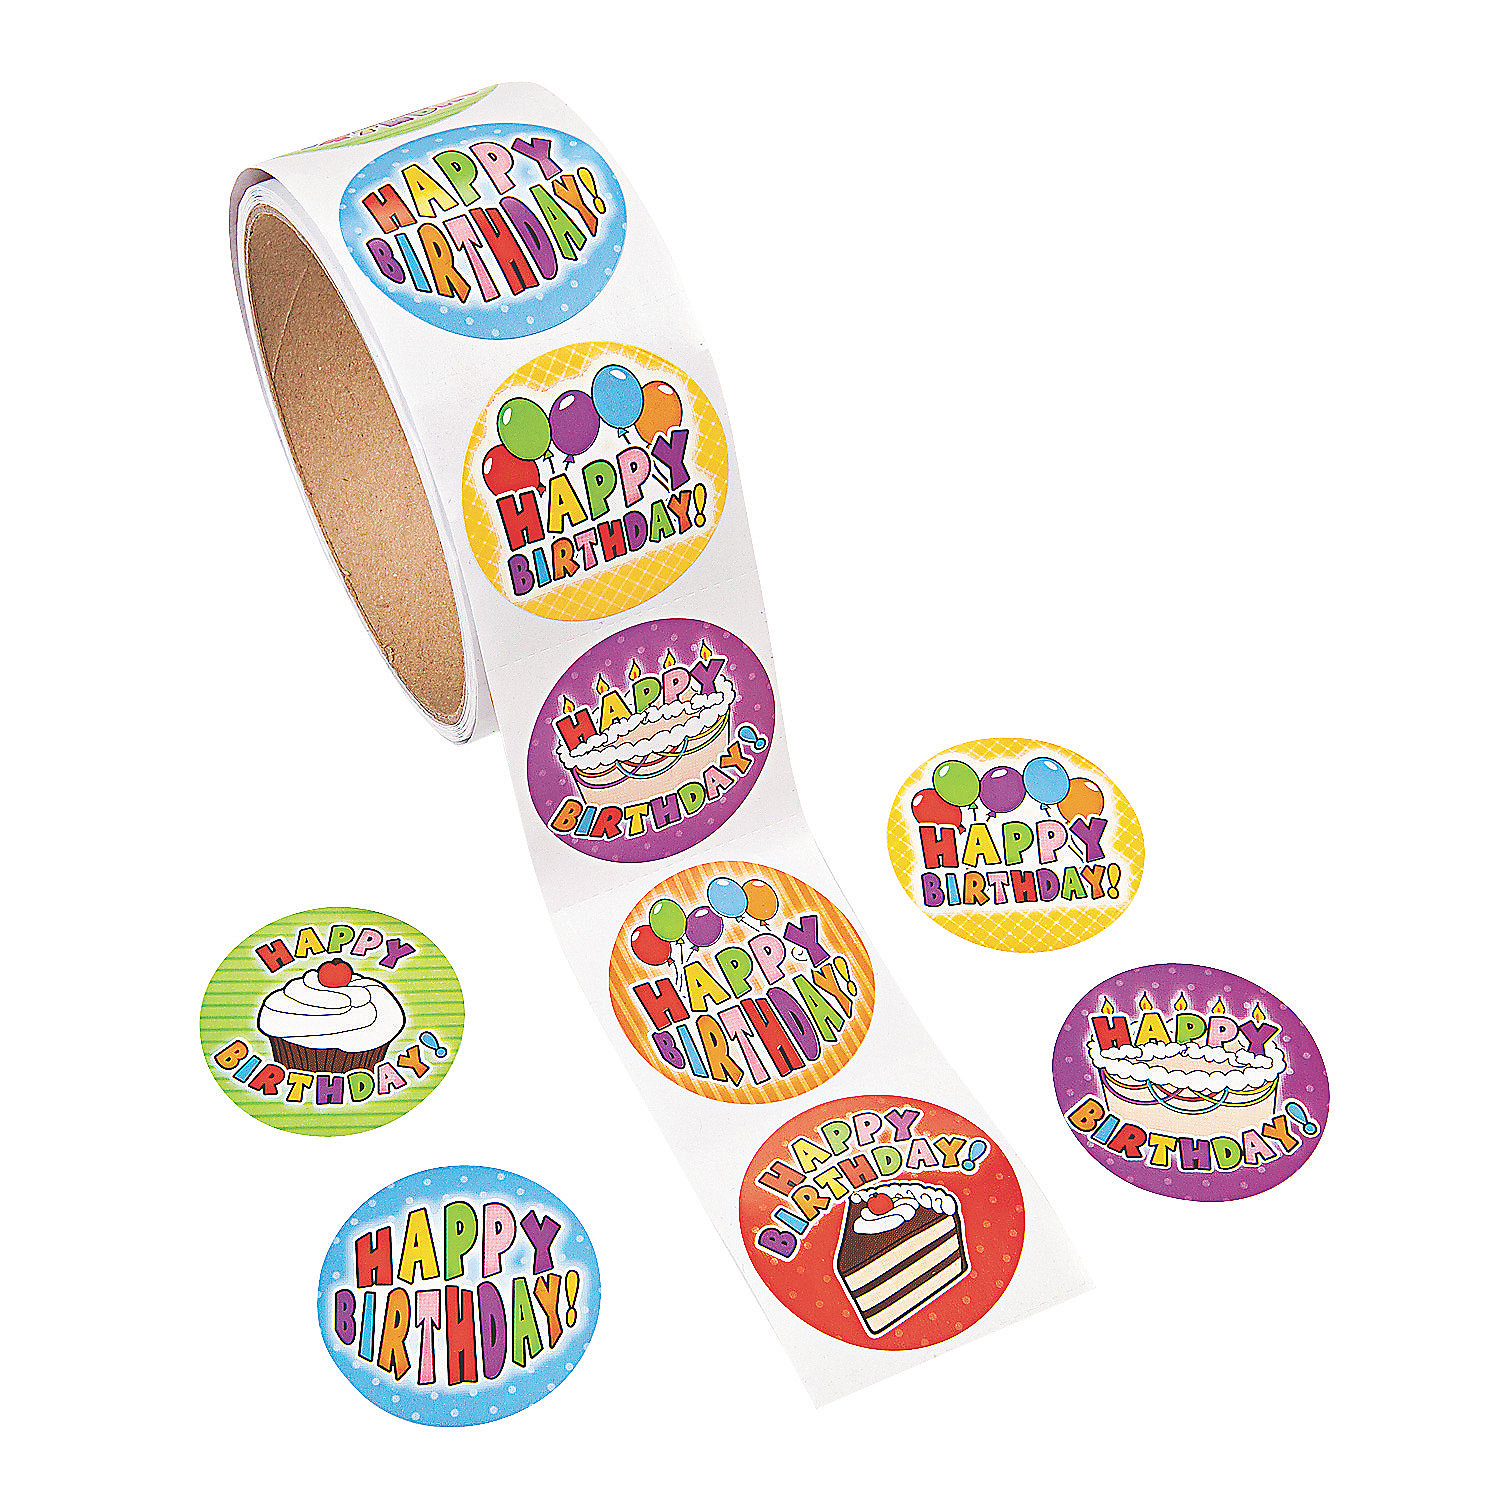 birthday roll stickers roll of 100. Black Bedroom Furniture Sets. Home Design Ideas